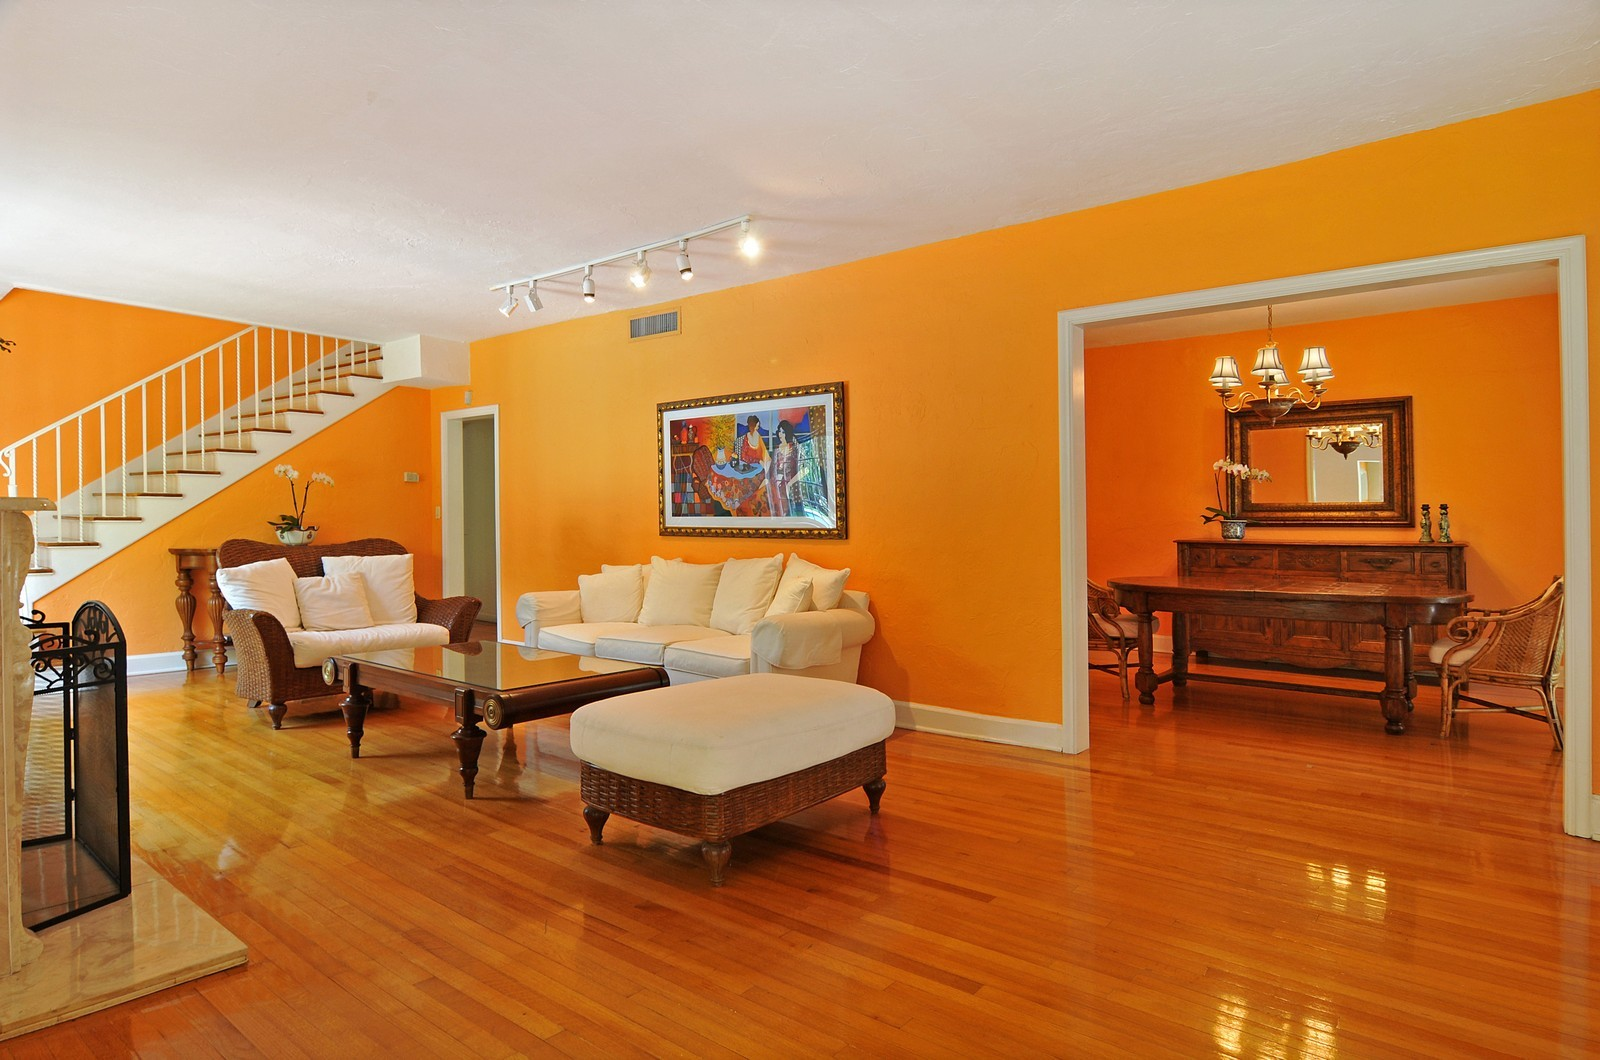 Real Estate Photography - 536 Alhambra, Coral Gables, FL, 33134 - Living Room / Dining Room